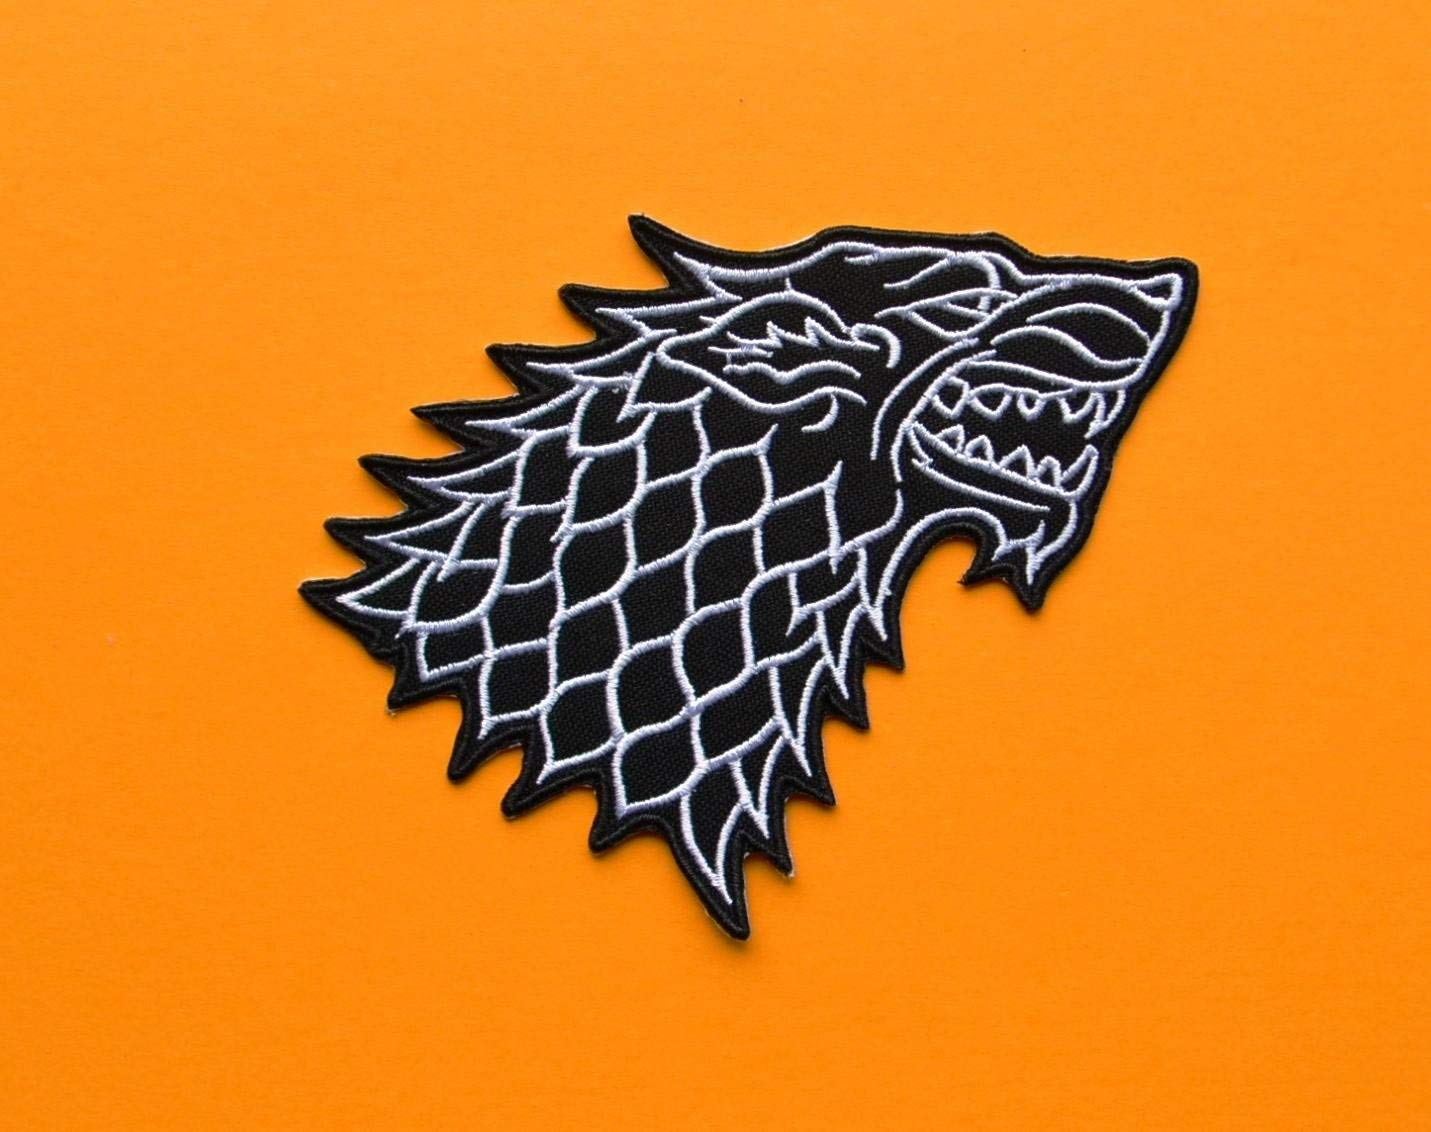 Game of Thrones Stark Direwolf Embroidered Cloth Iron On Patch